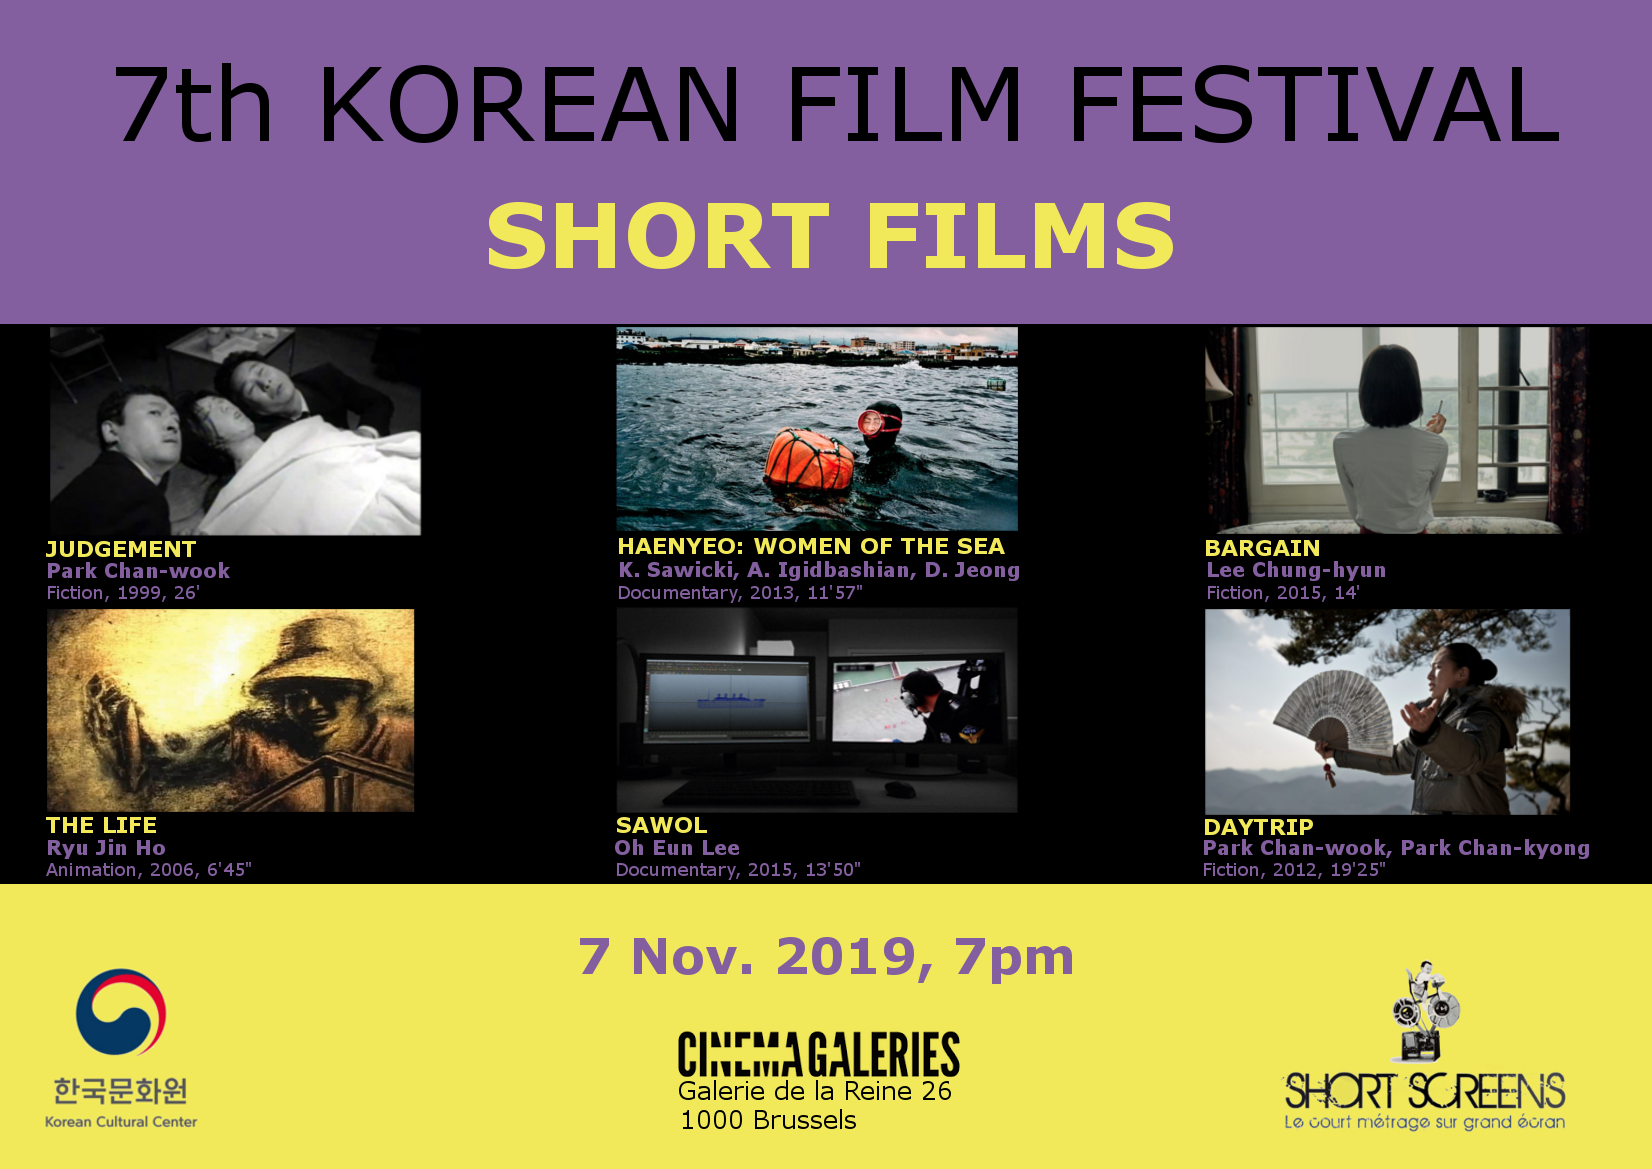 A3-Korean Film Festival Short Films